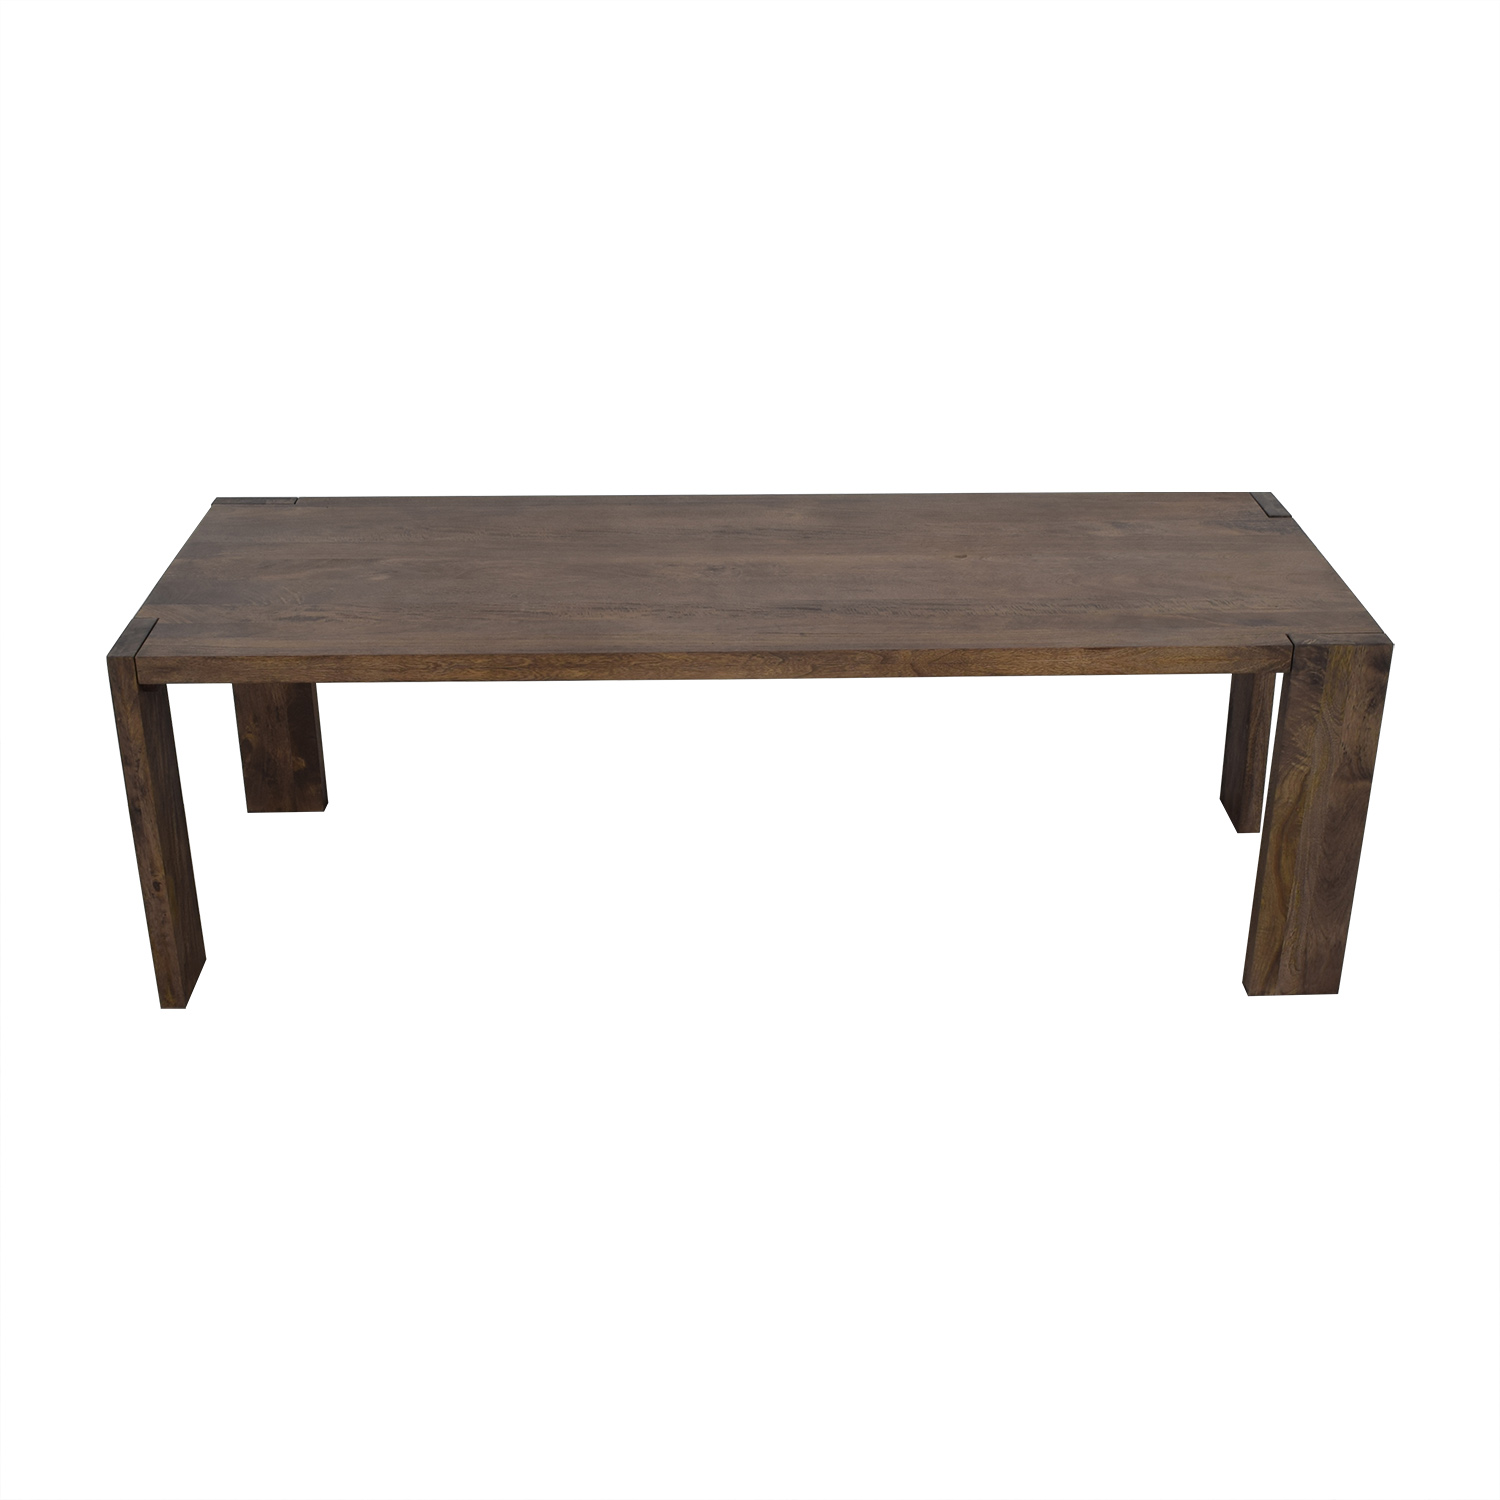 CB2 CB2 Blox Dining Table brown